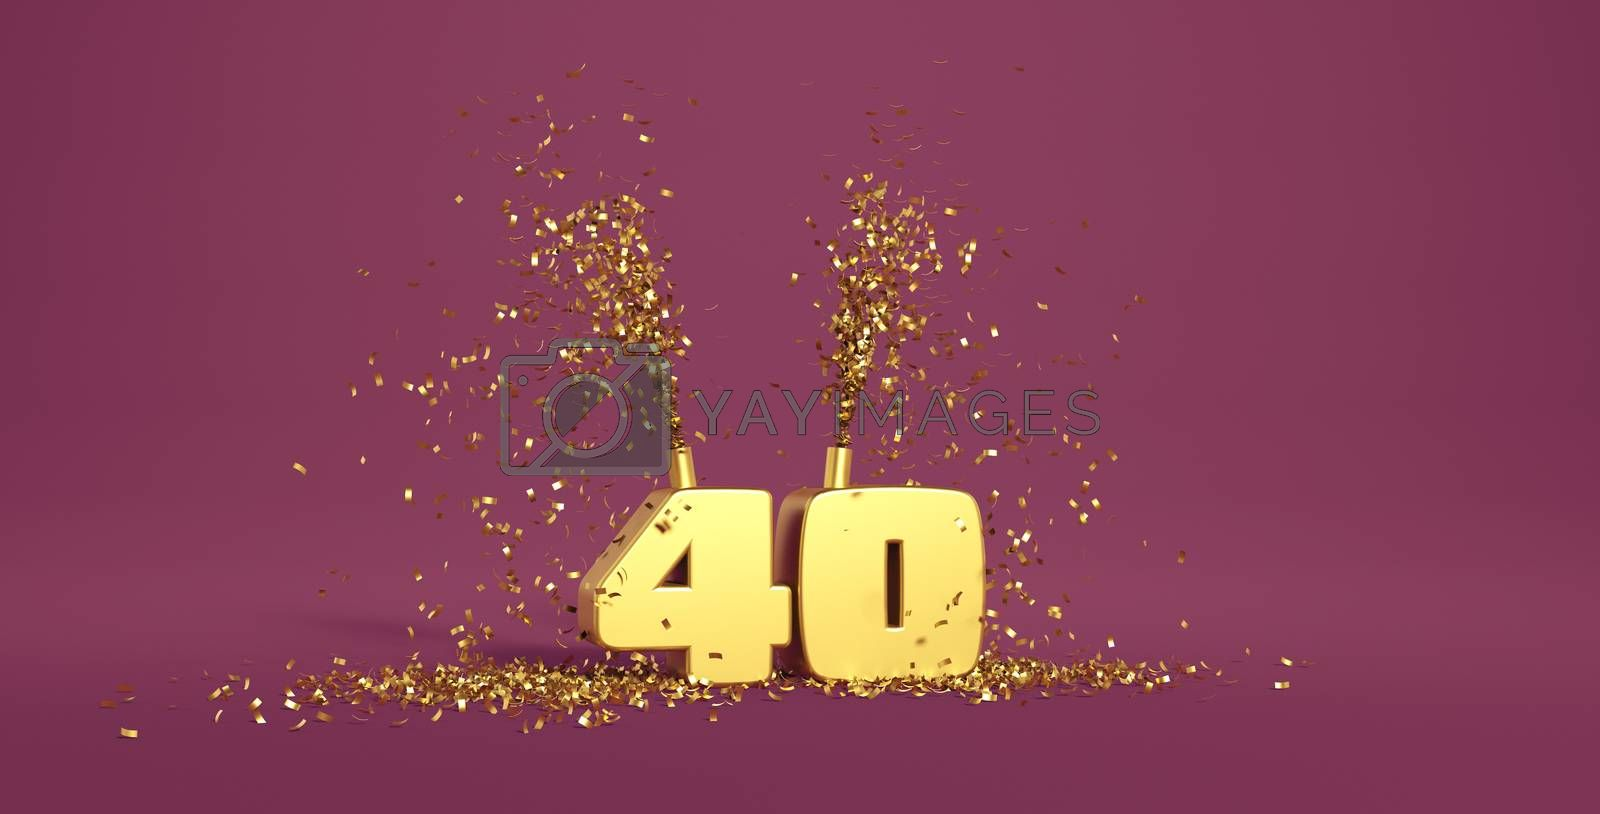 40 years old, word in 3D golden on a purple background